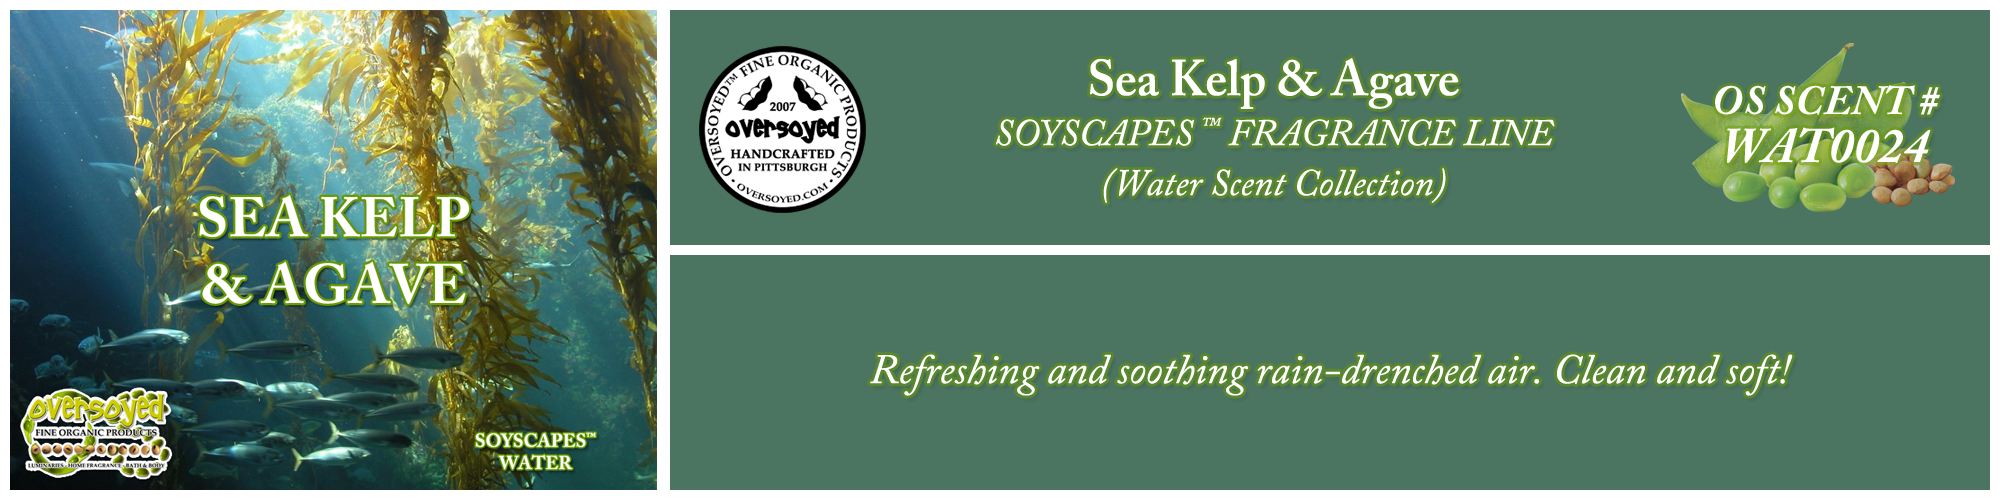 Sea Kelp & Agave Handcrafted Products Collection